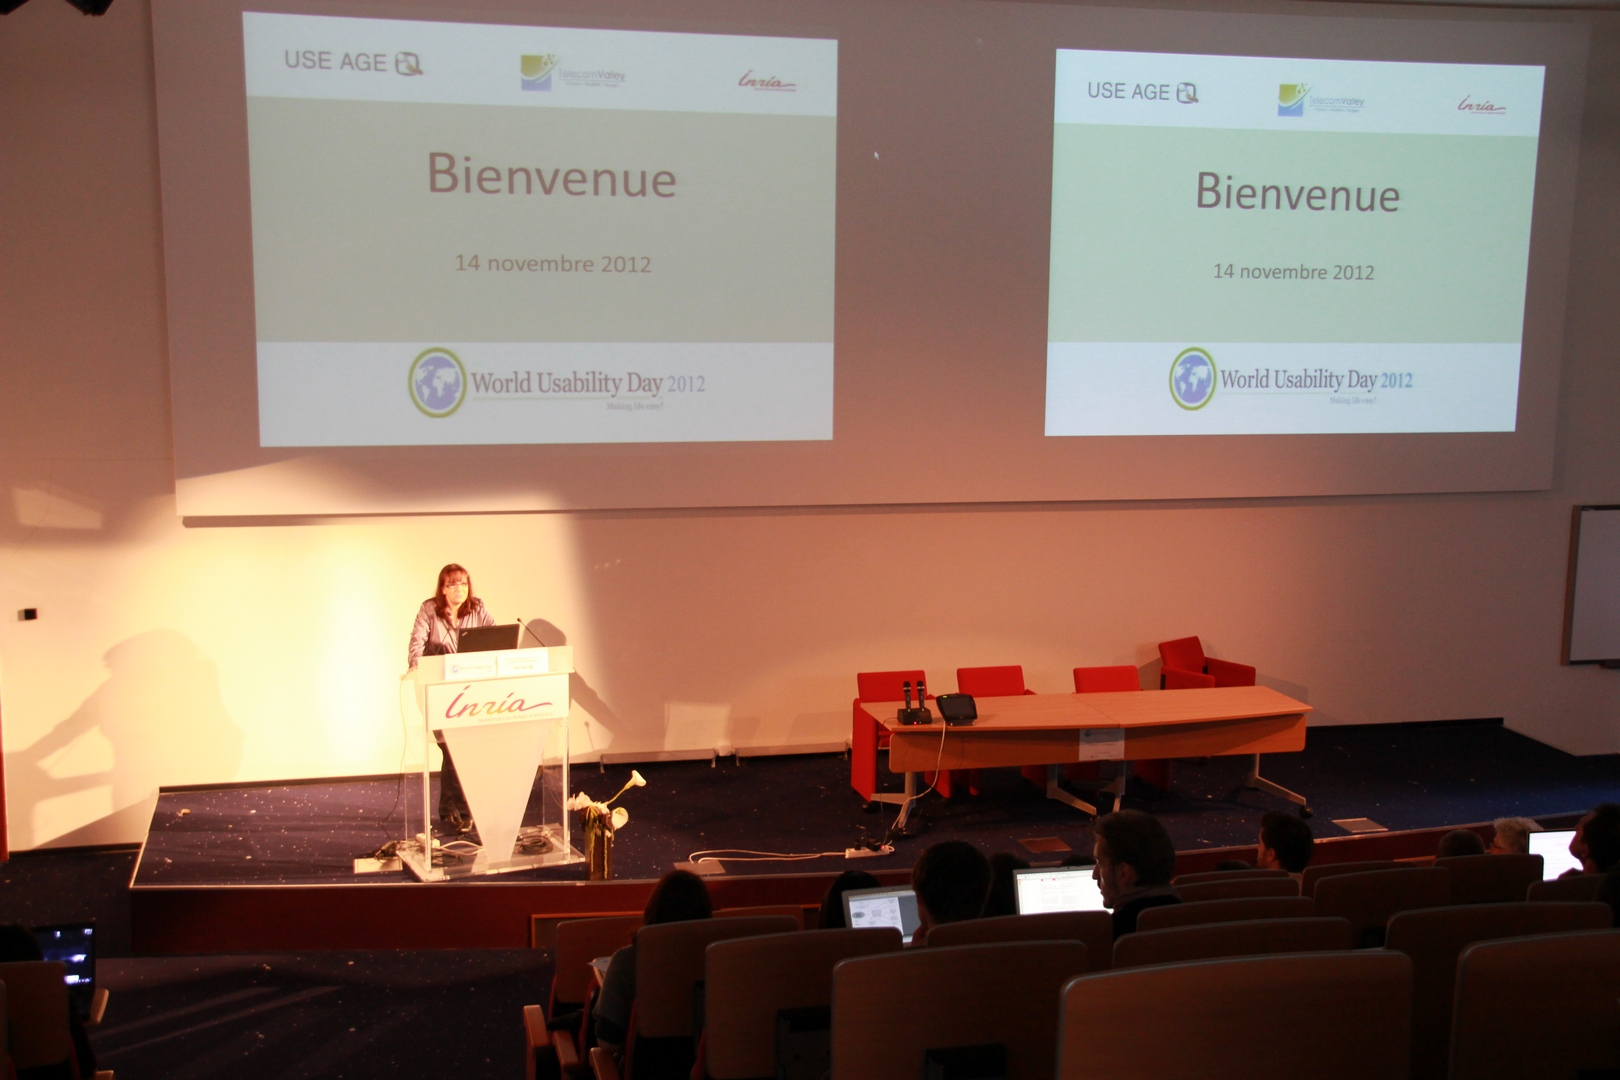 WUD 2012 : Usages et technologies innovantes